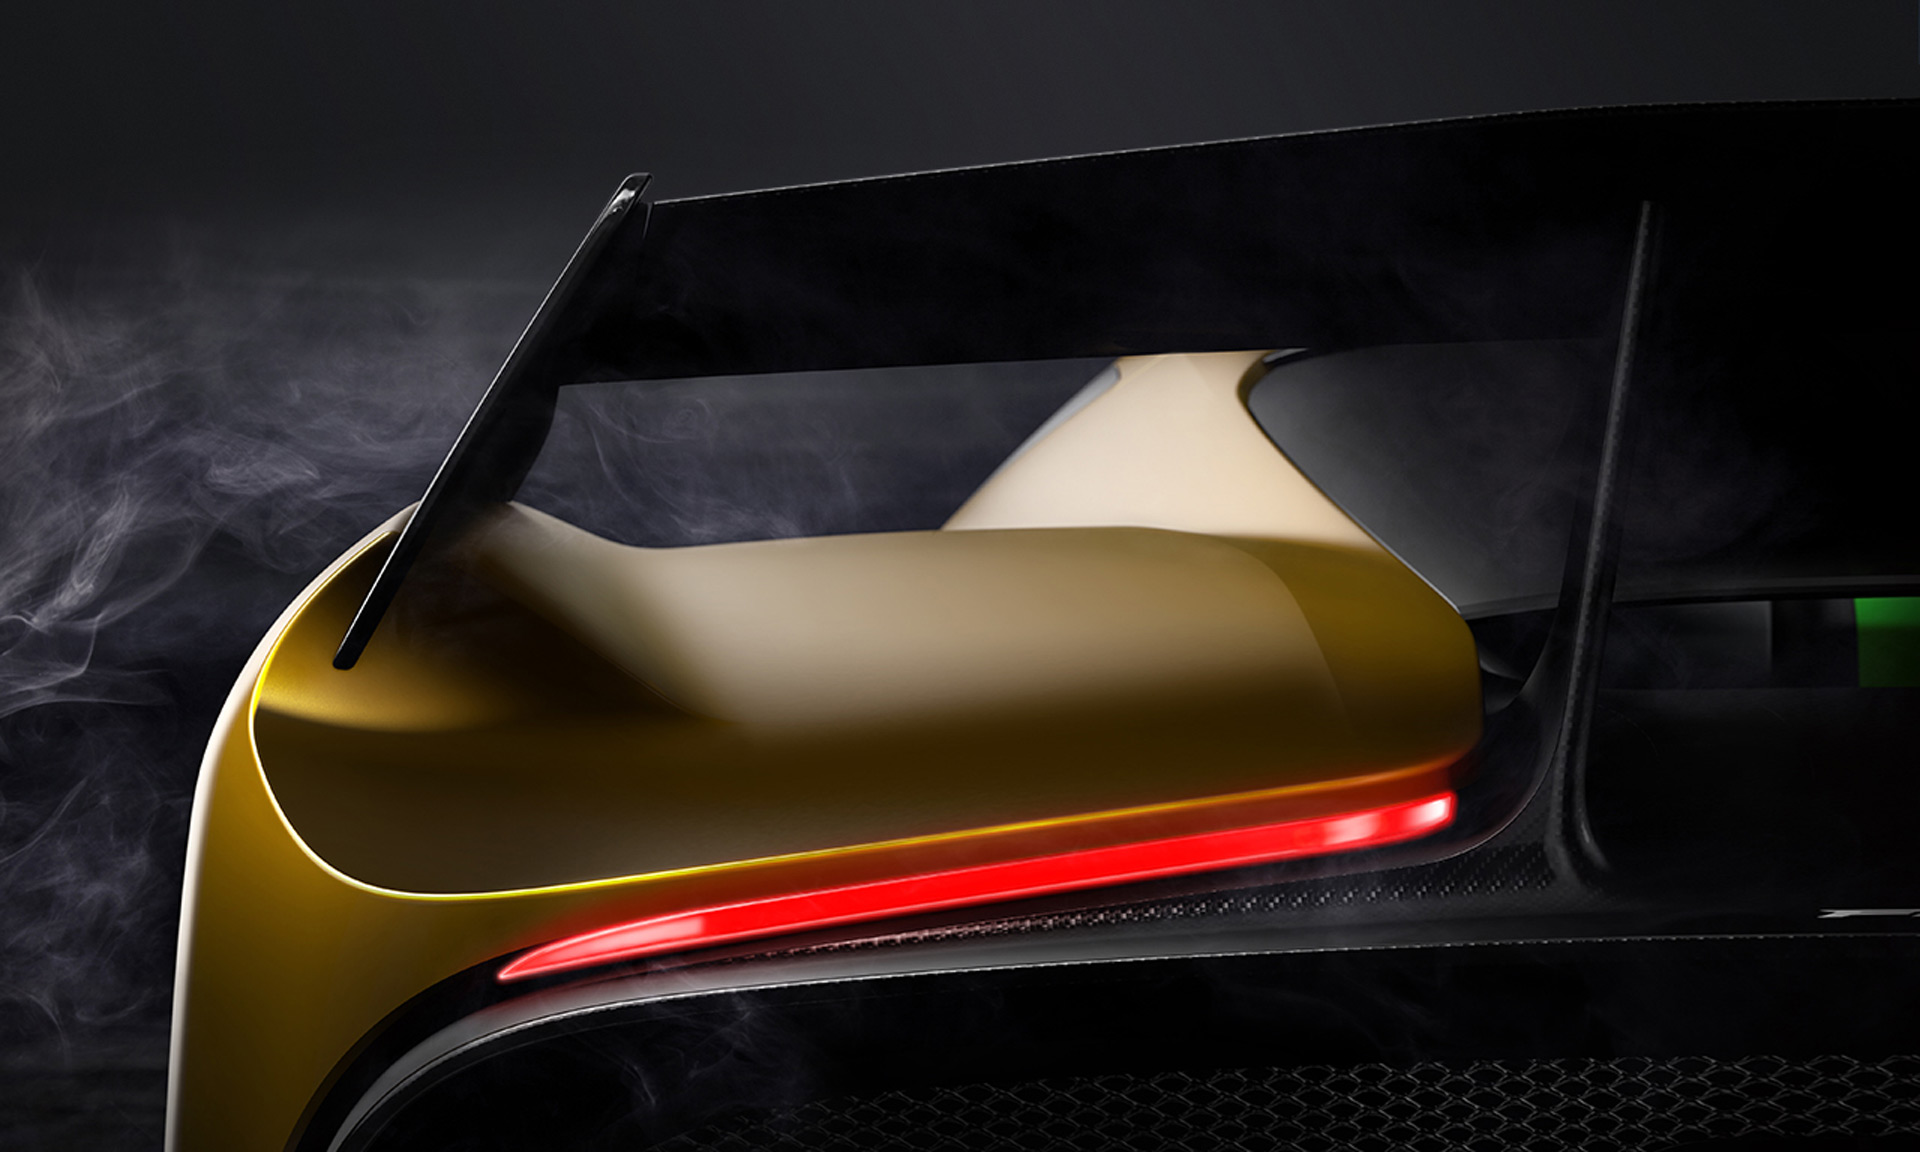 teaser-for-fittipaldi-ef7-vision-gran-turismo-by-pininfarina